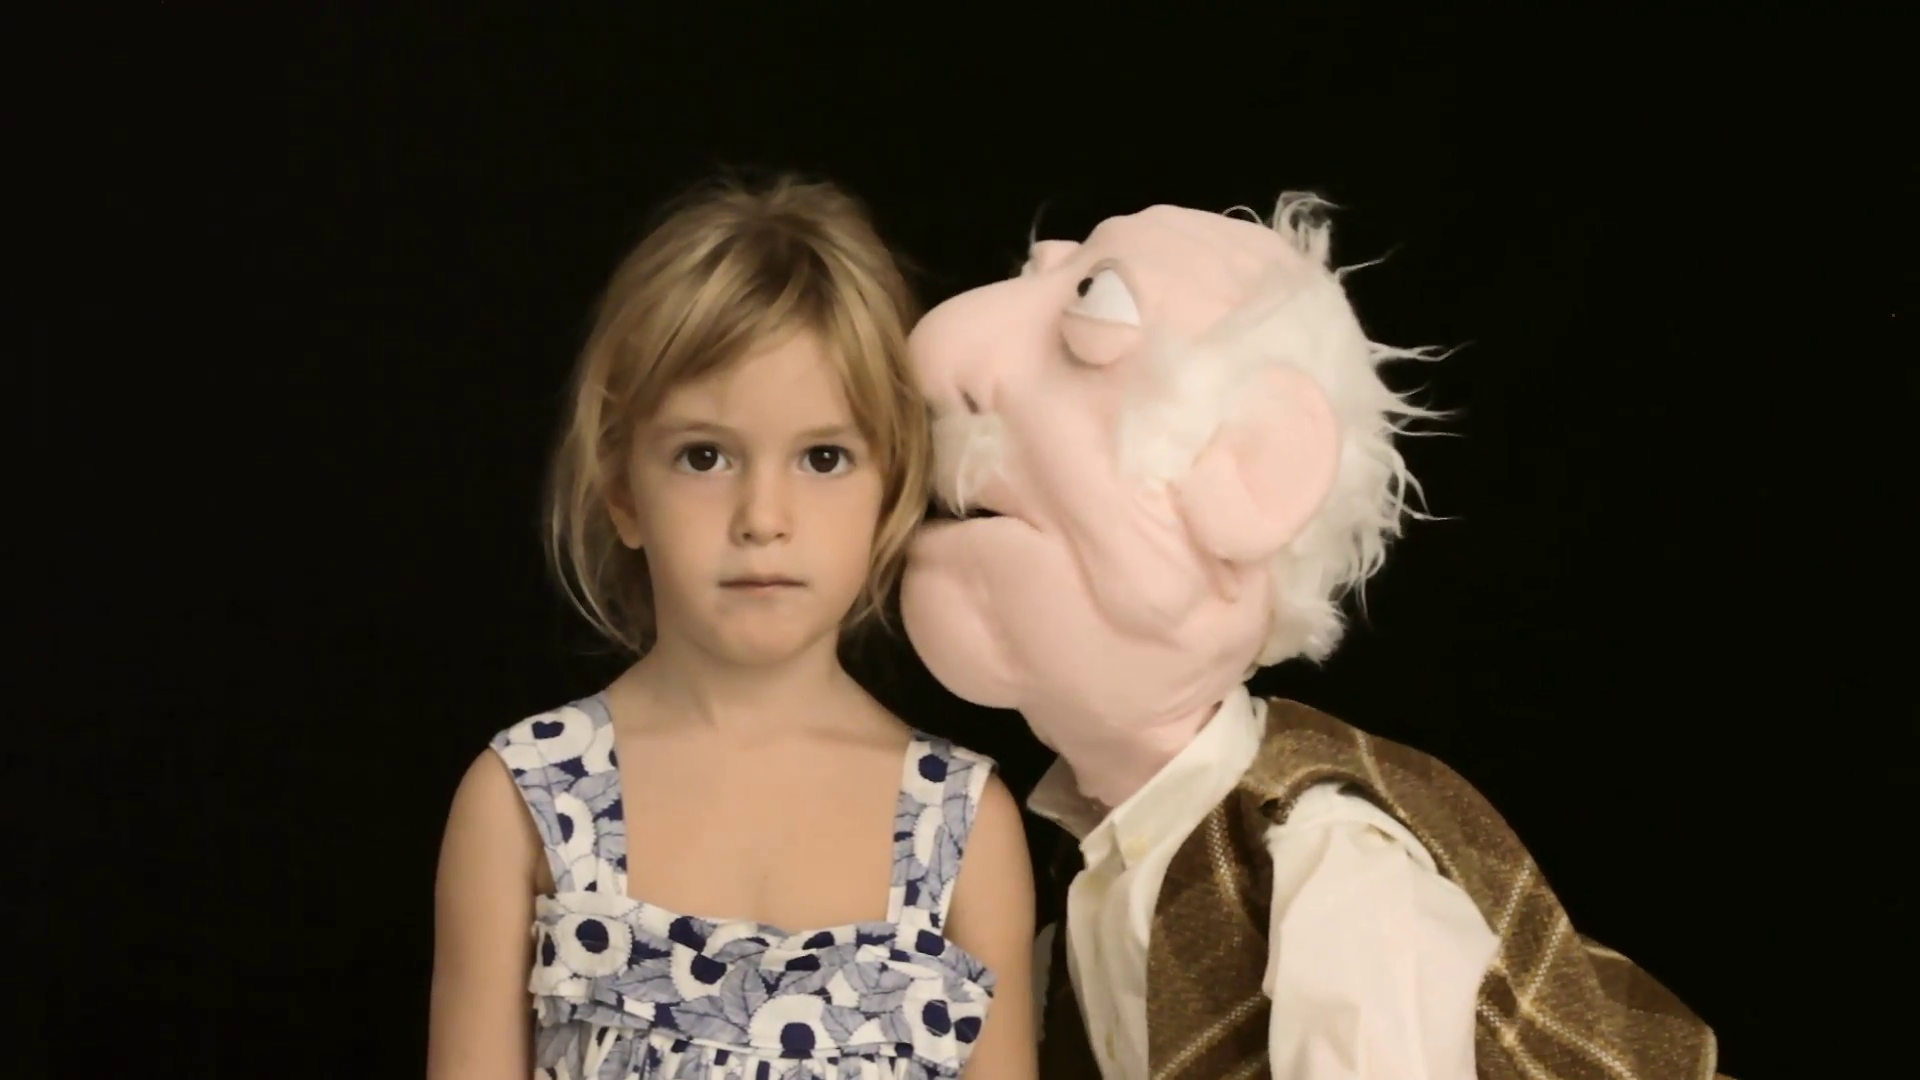 Little girl puppet secret whispering 2. The puppet of an old man ...